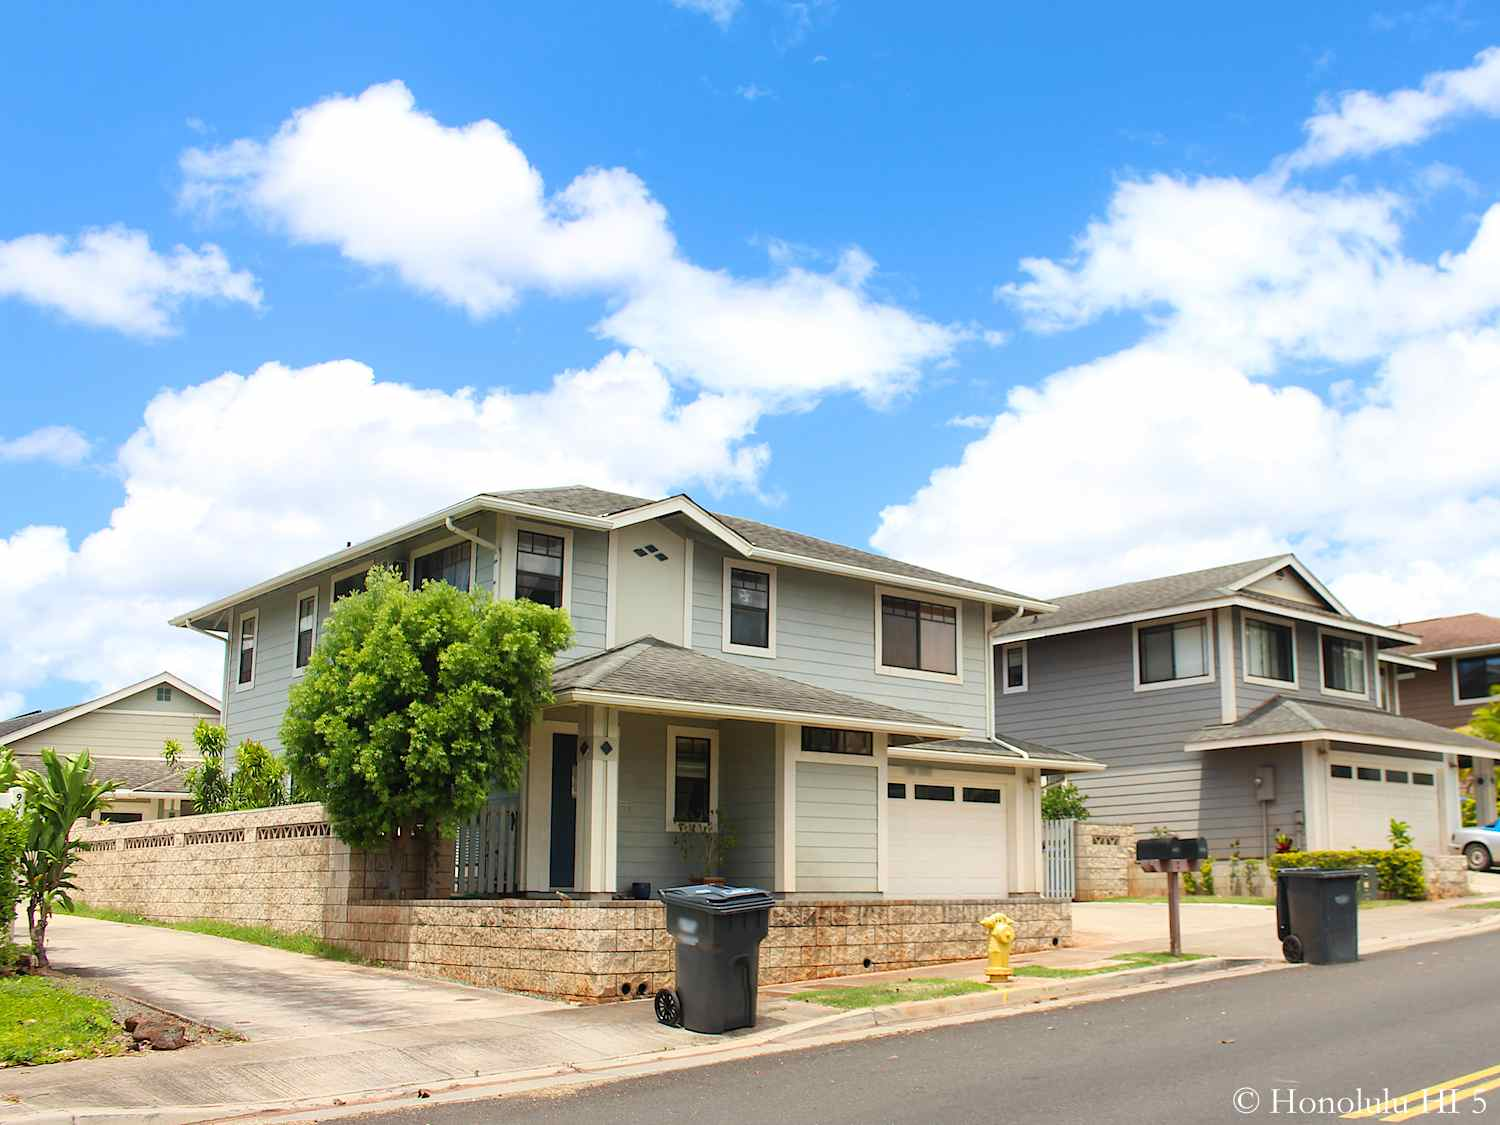 Typical Looking Royal Kunio Homes in Beige Color on Small Lot